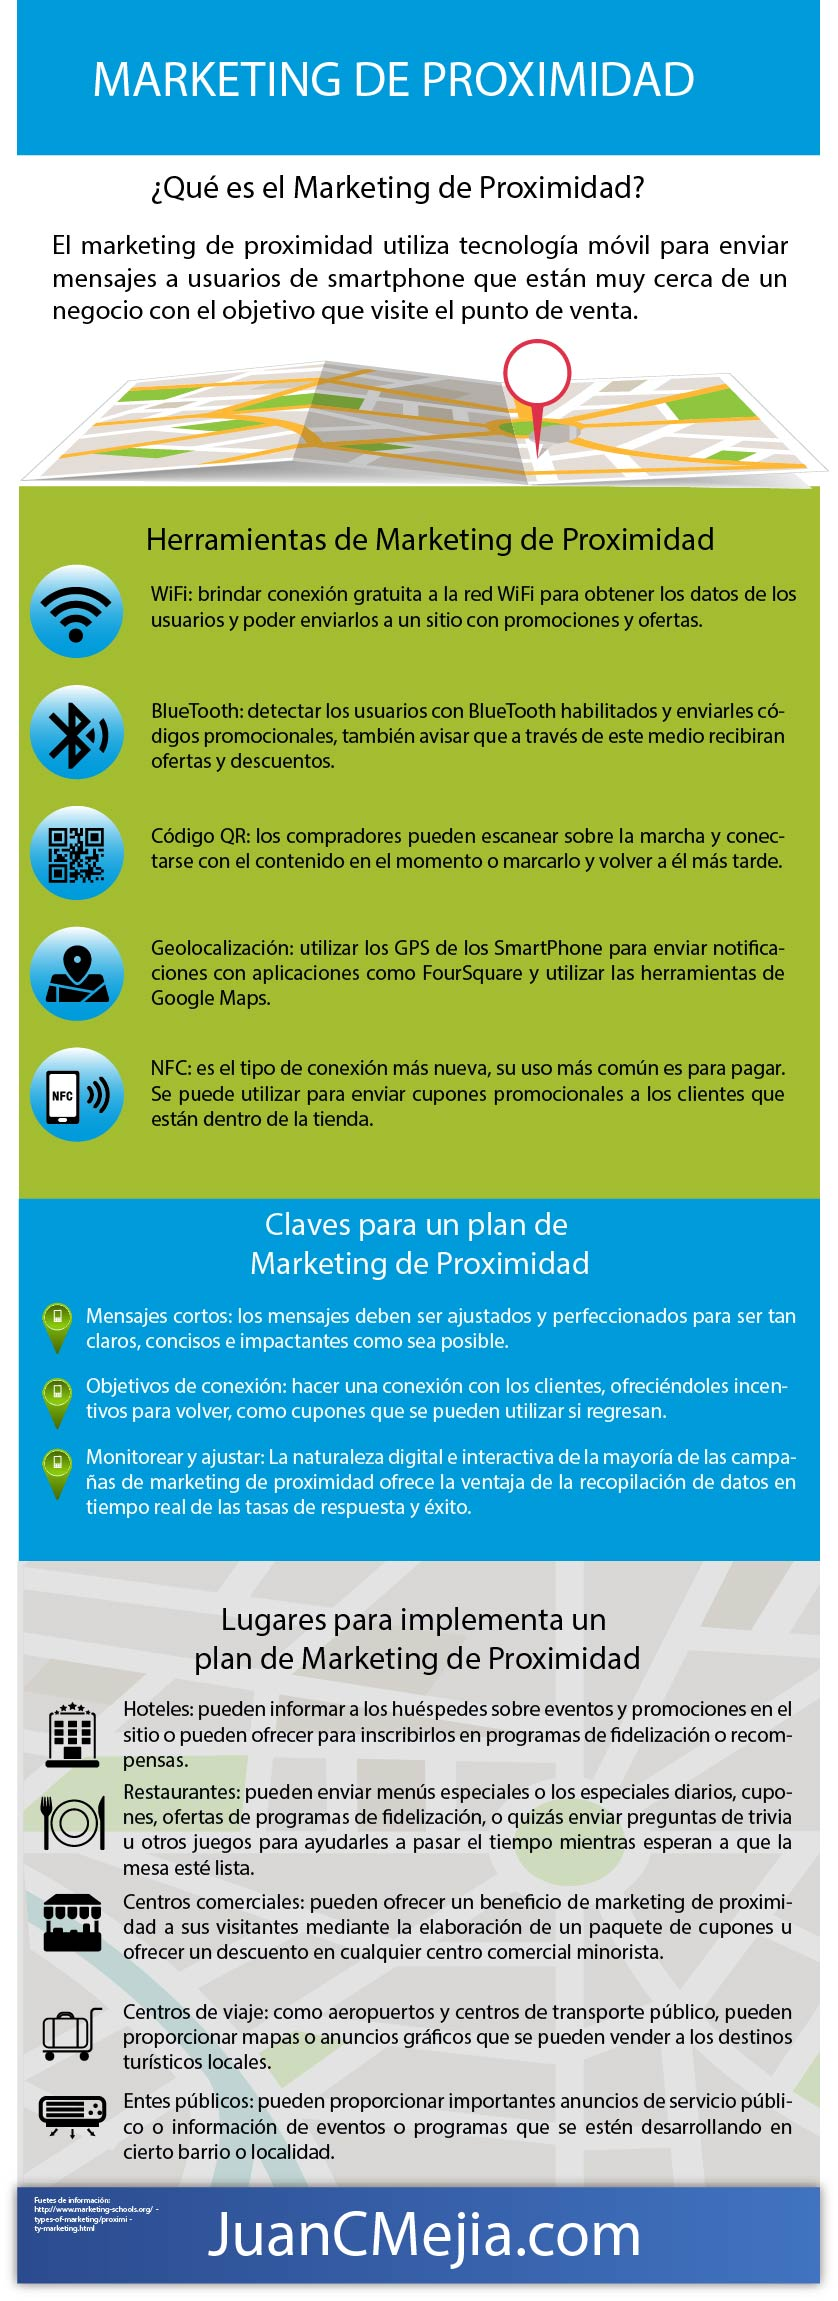 Infografía de Marketing de Proximidad